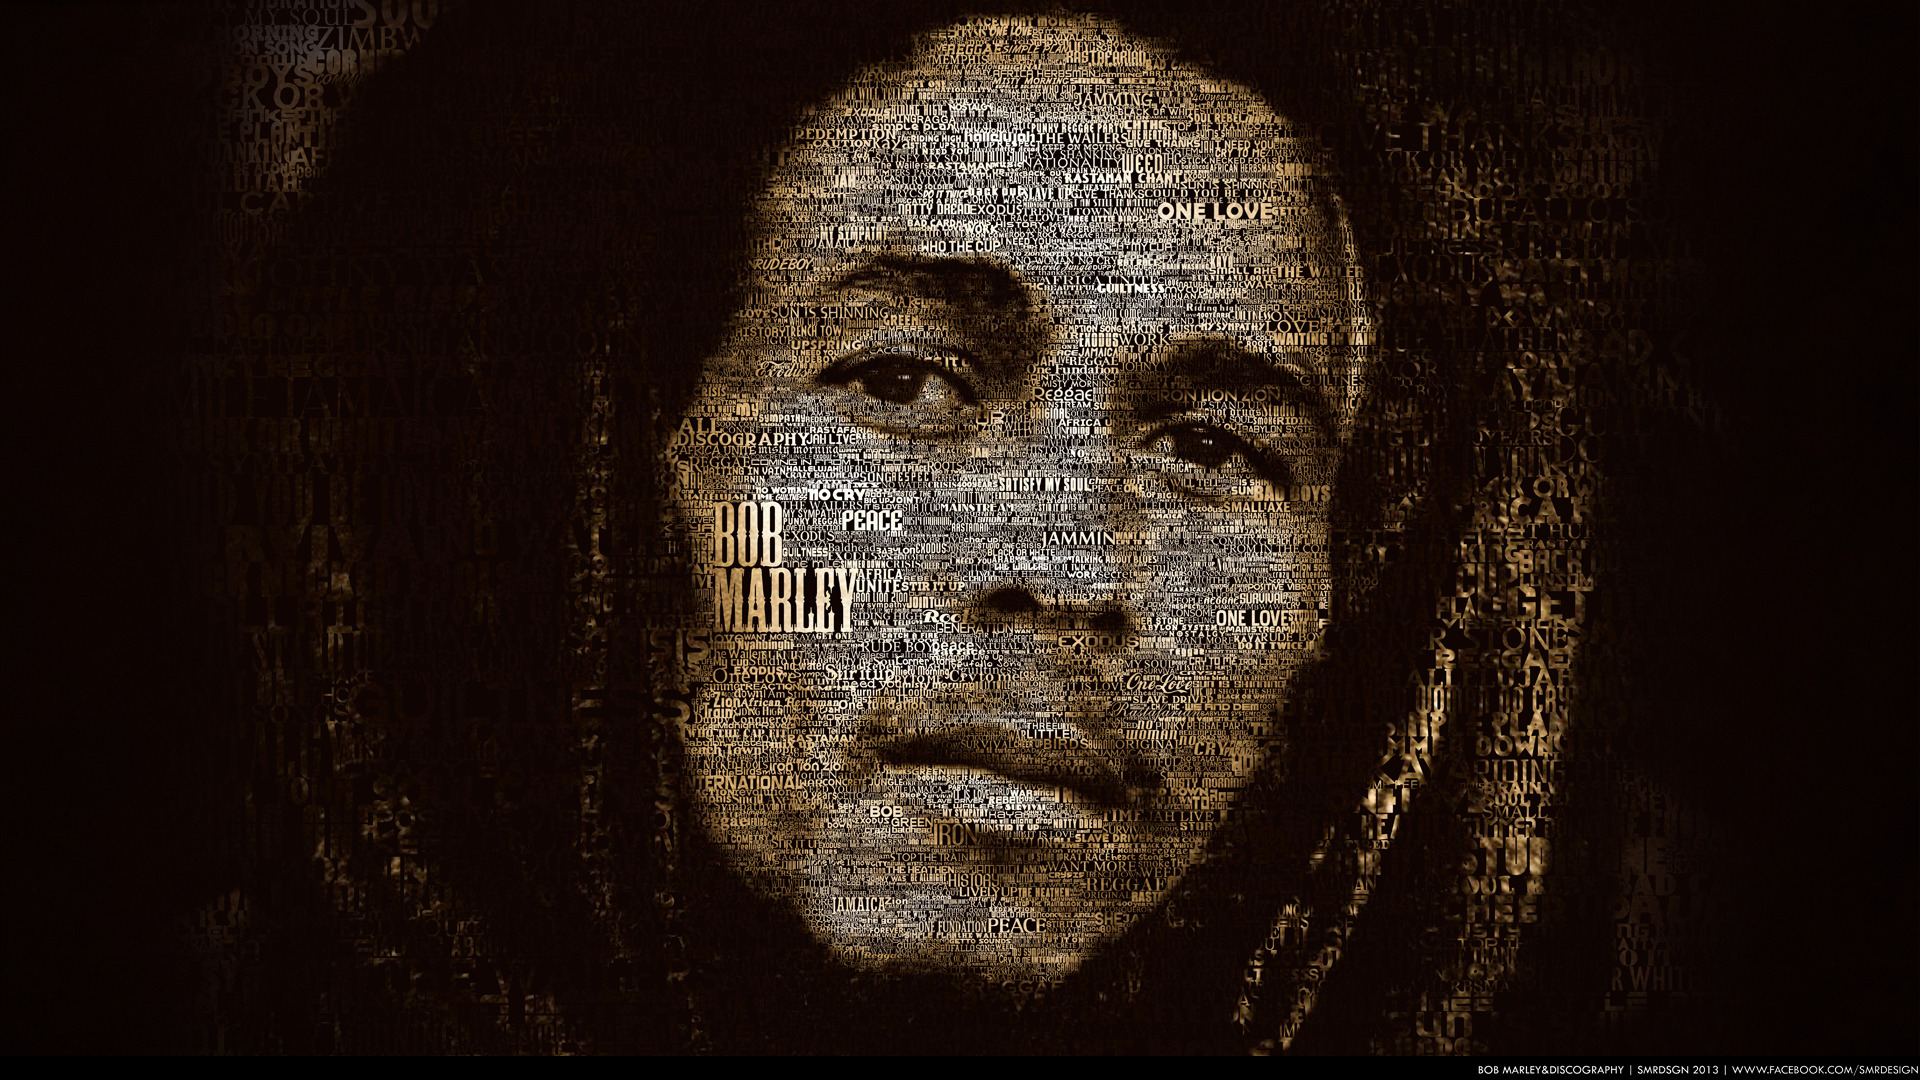 bob marley wallpaper typography - HD Desktop Wallpapers 4k HD